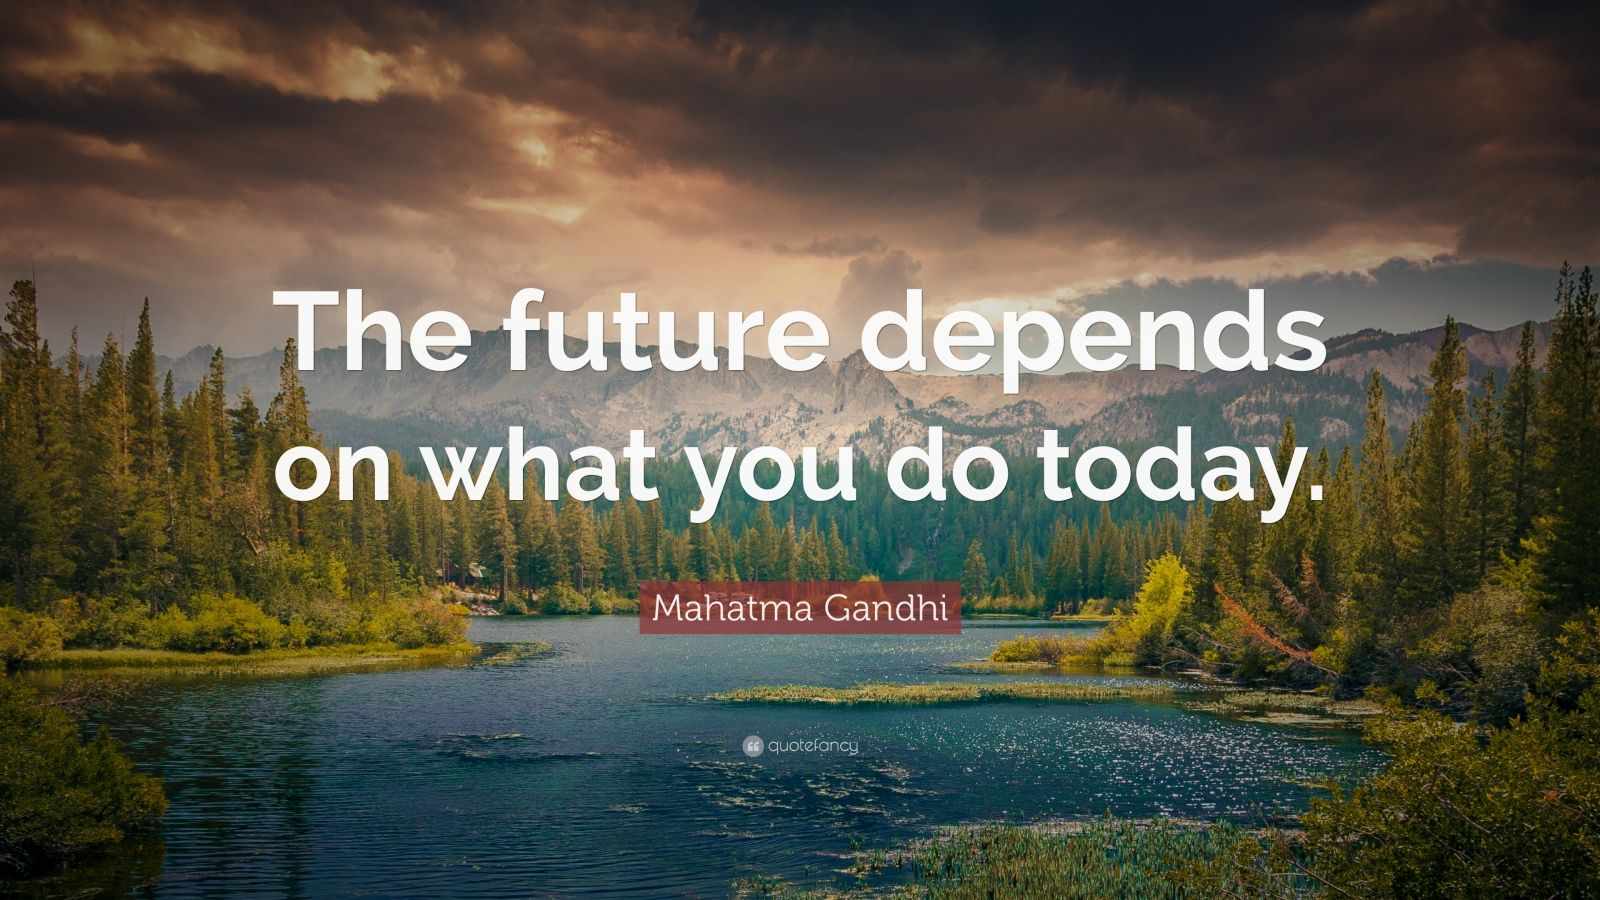 Mahatma Gandhi Wallpaper With Quotes Mahatma Gandhi Quote The Future Depends On What You Do